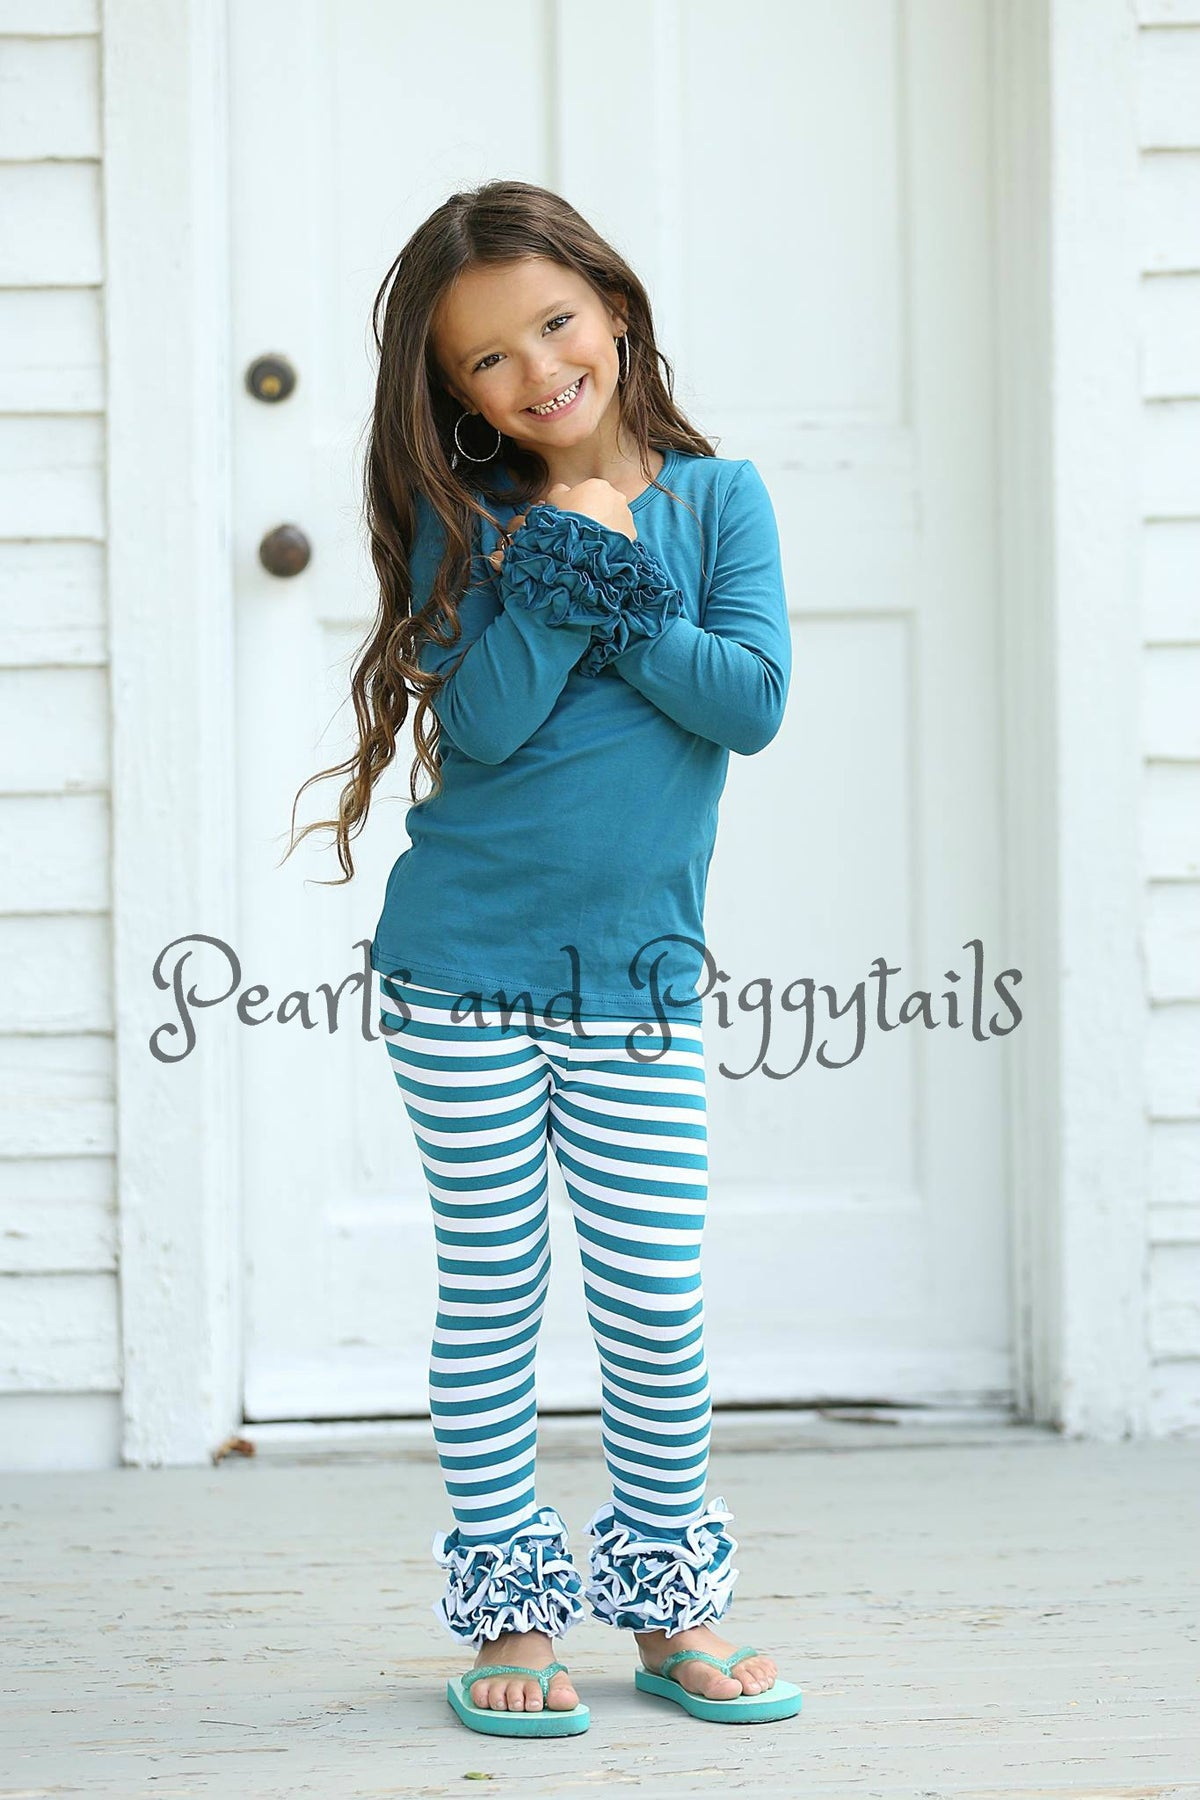 Icing Ruffle Leggings - Jade Stripe - Pearls and Piggytails